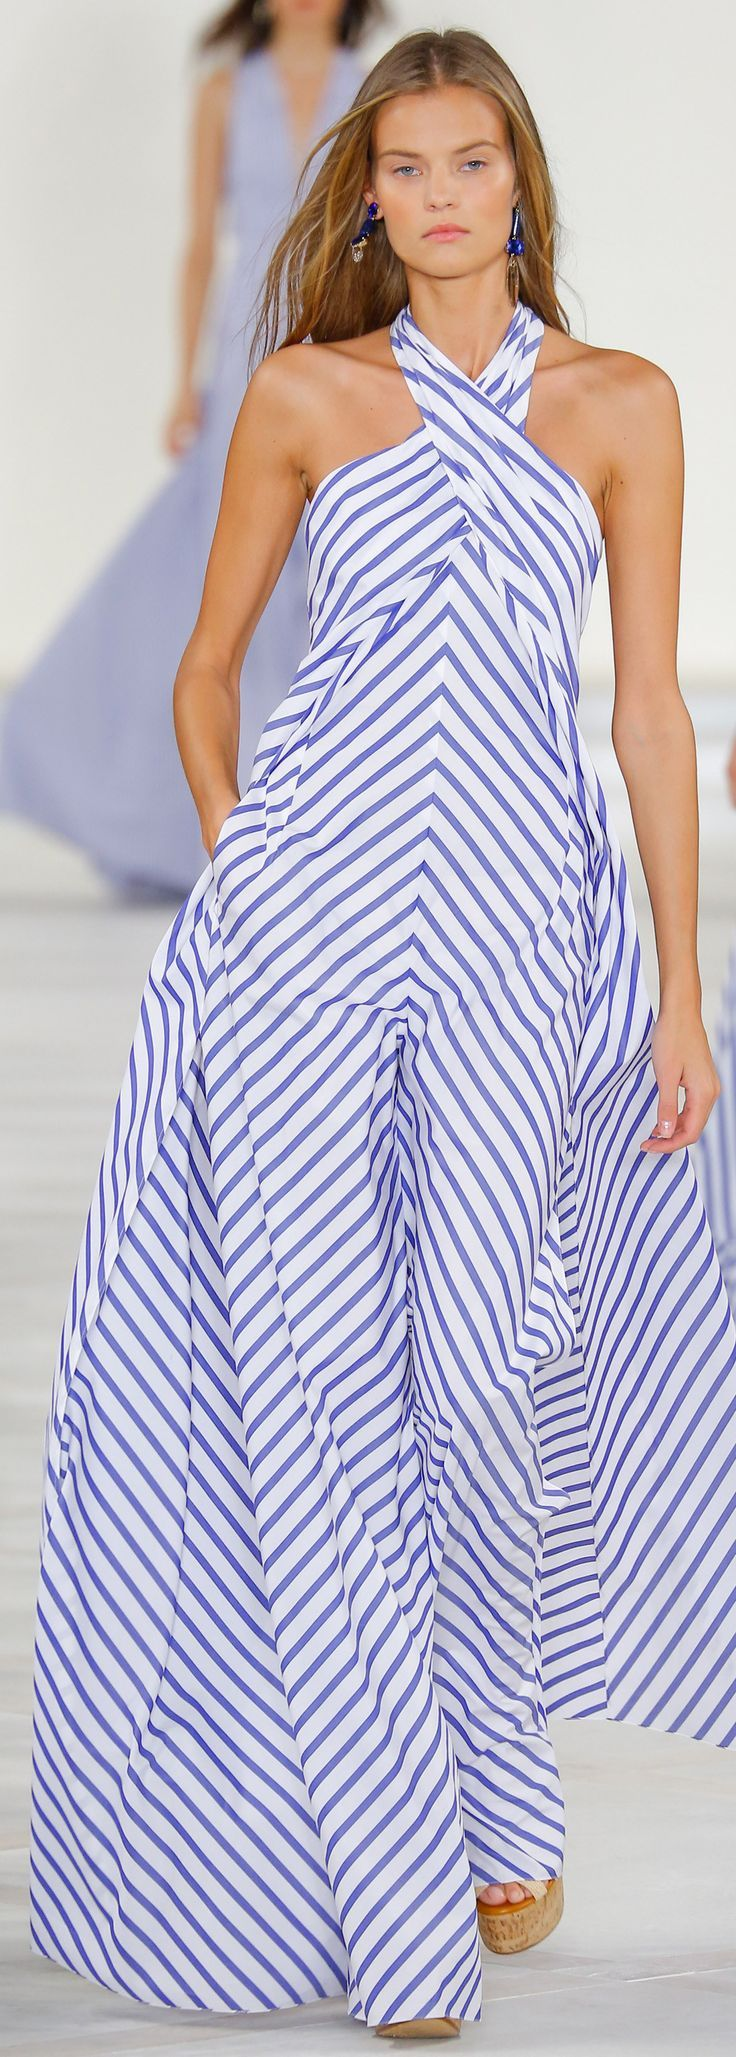 #Farbberatung #Stilberatung #Farbenreich mit www.farben-reich.com Ralph Lauren Collection Spring 2016: blue-and-white cotton broadcloth shirting striped jumpsuit